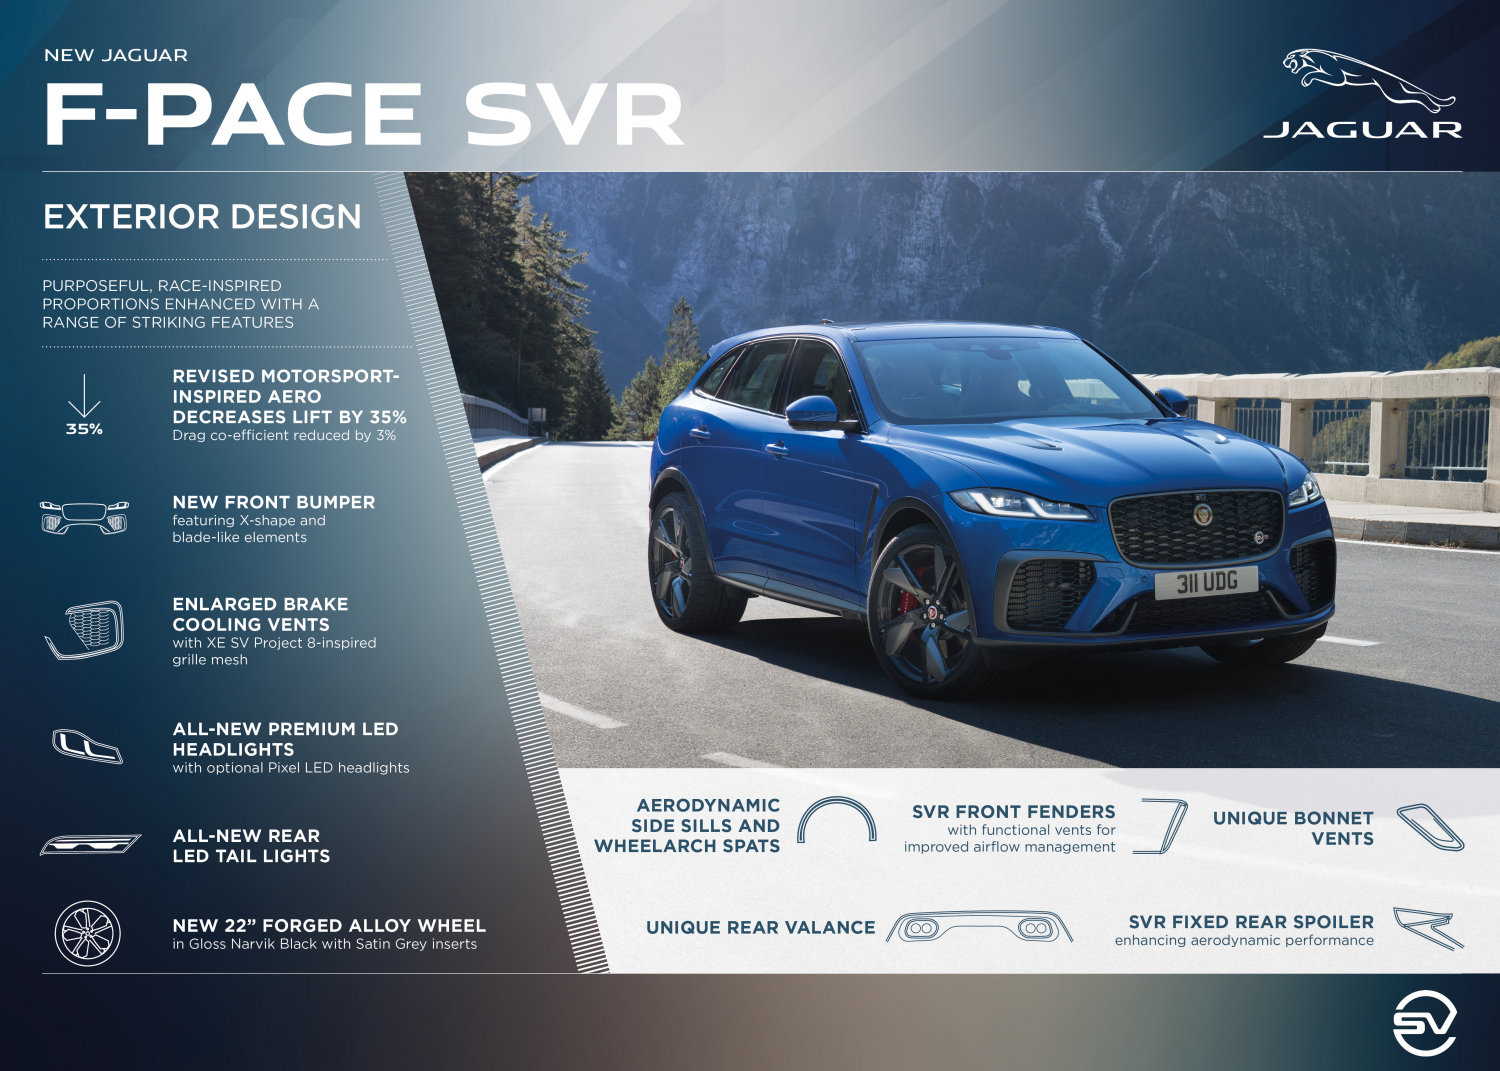 jaguar F-Pace SVR features